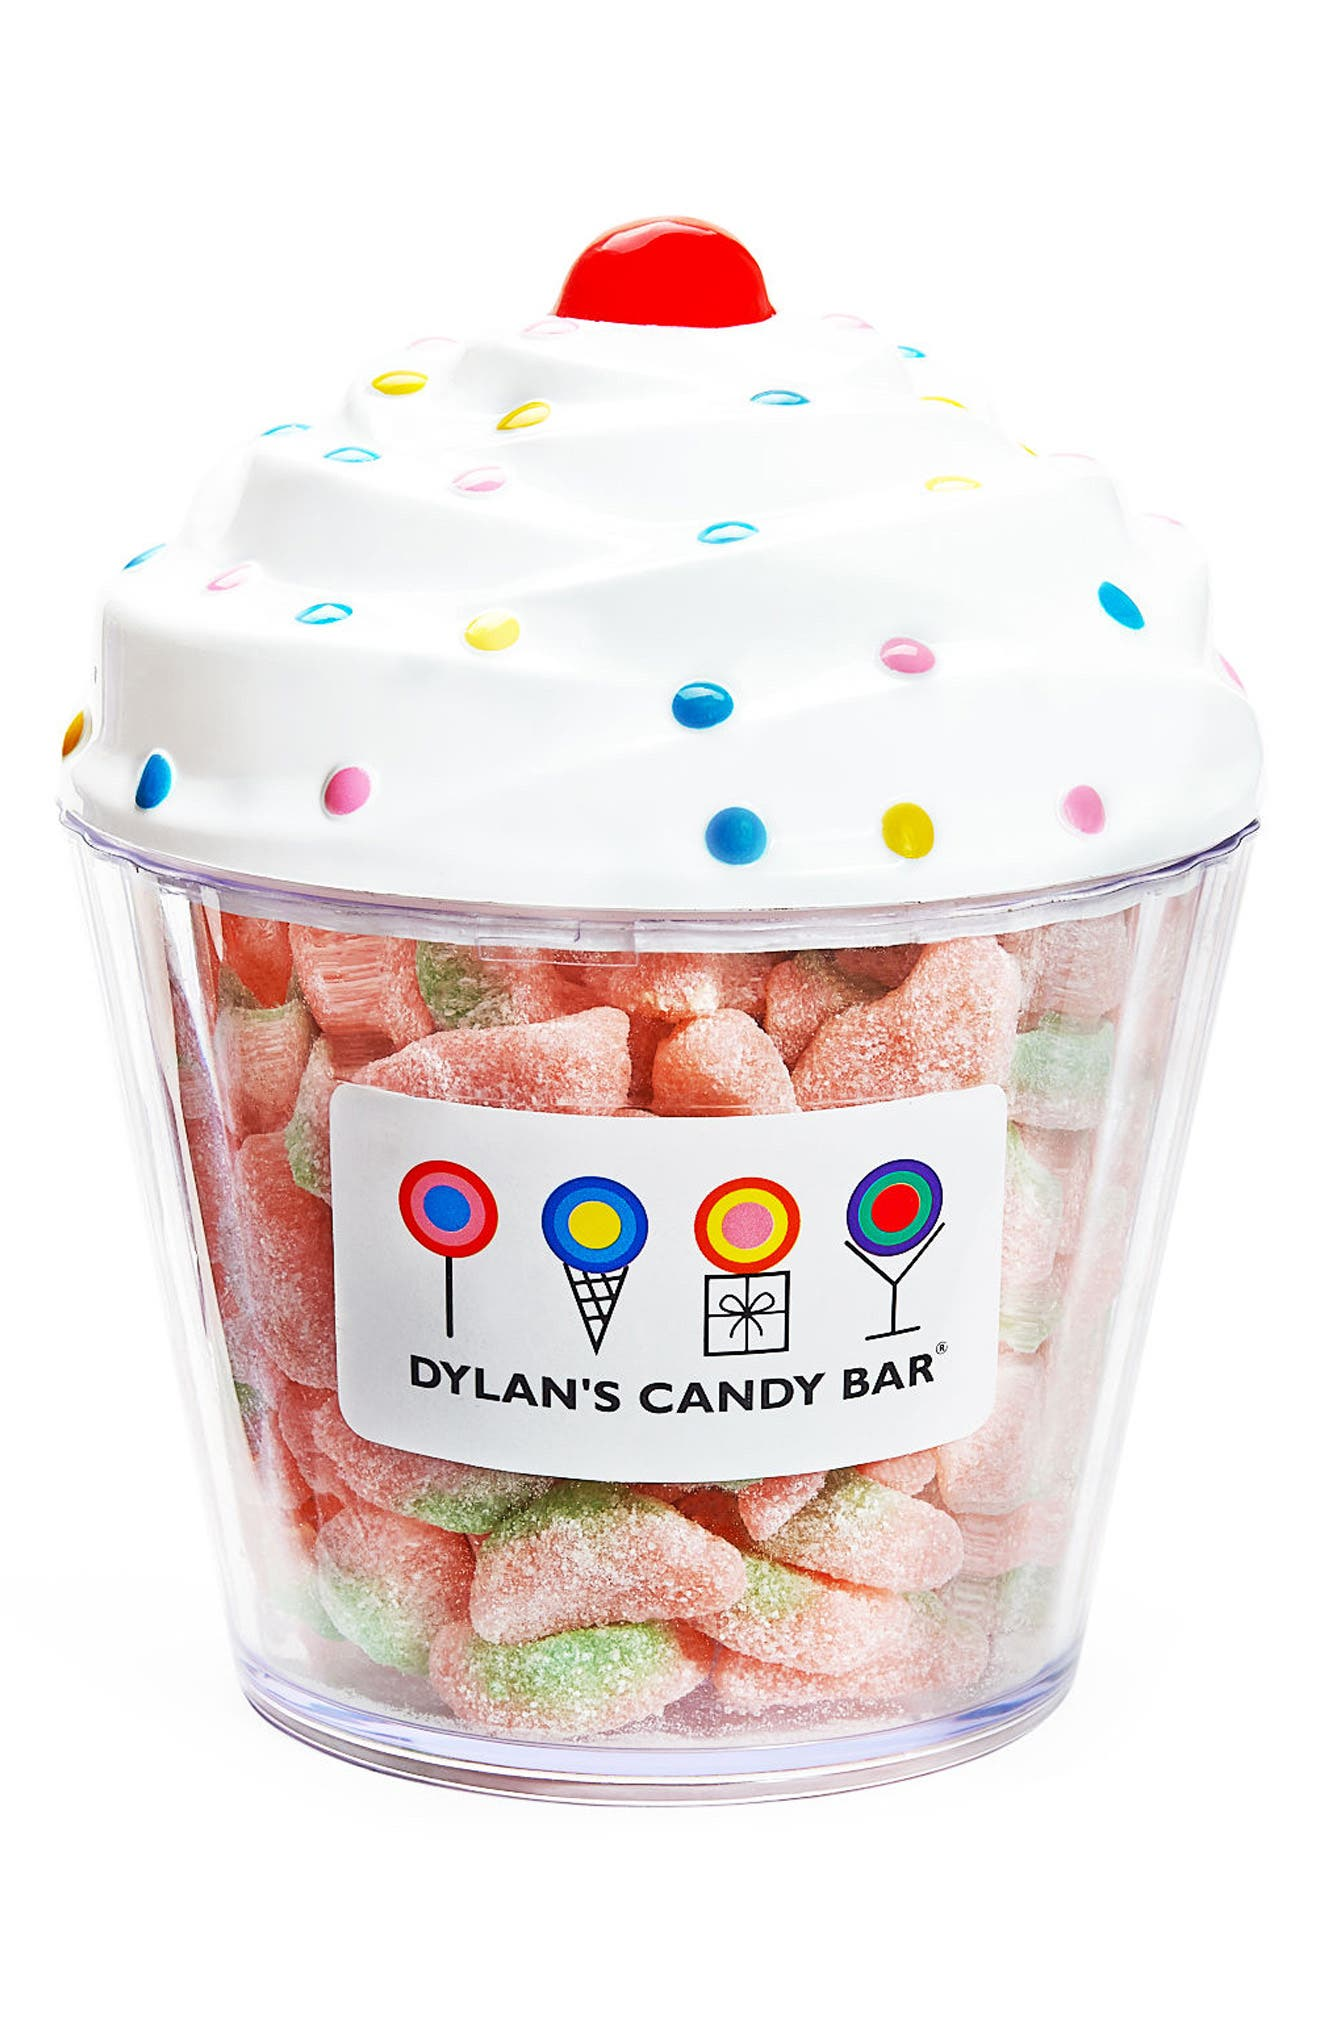 Dylan's Candy Bar Sour Watermelon Slices Cupcake